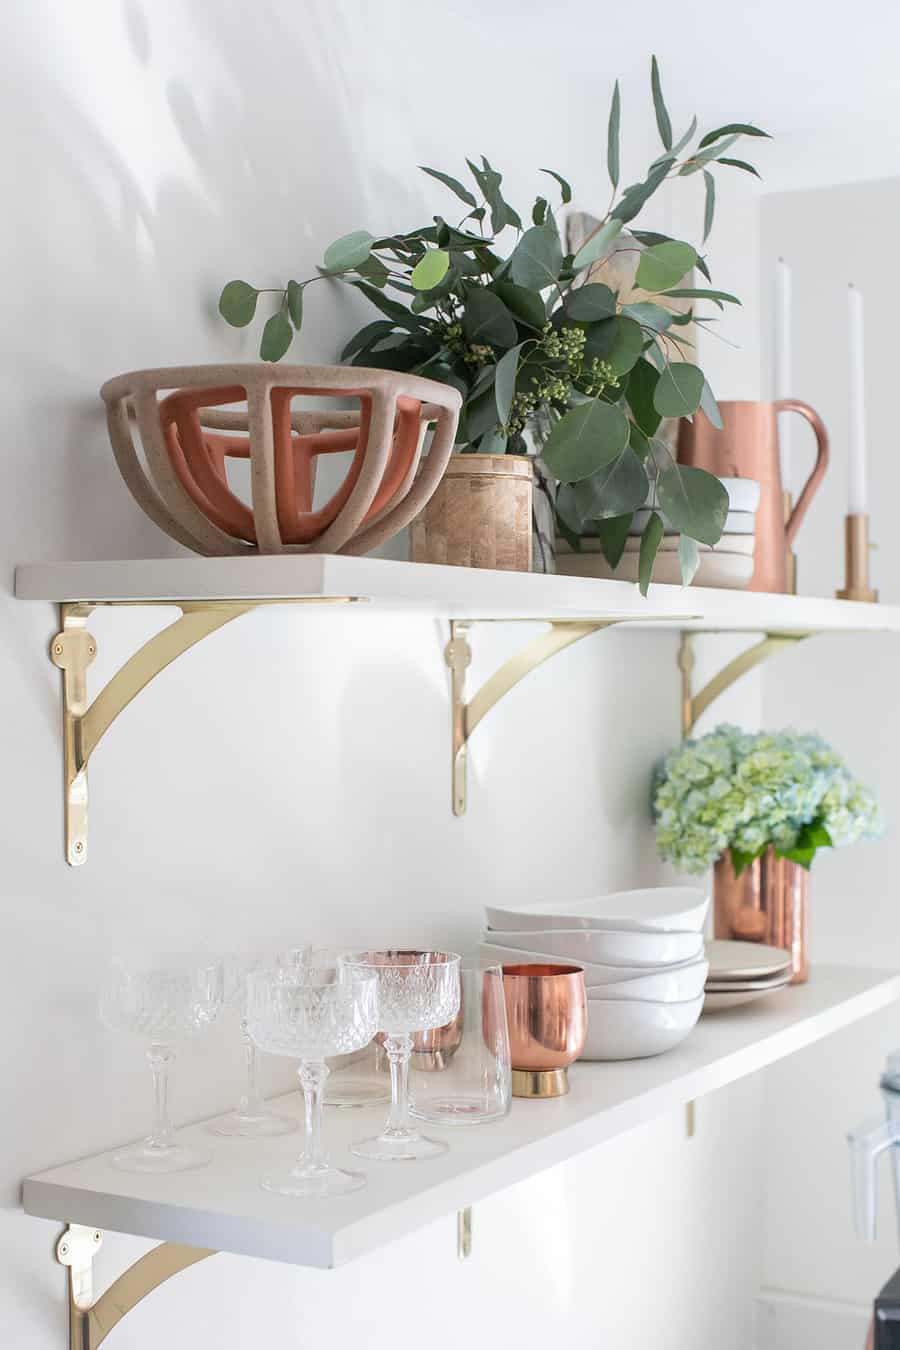 white open shelving with bowls, flowers, glasses and plates